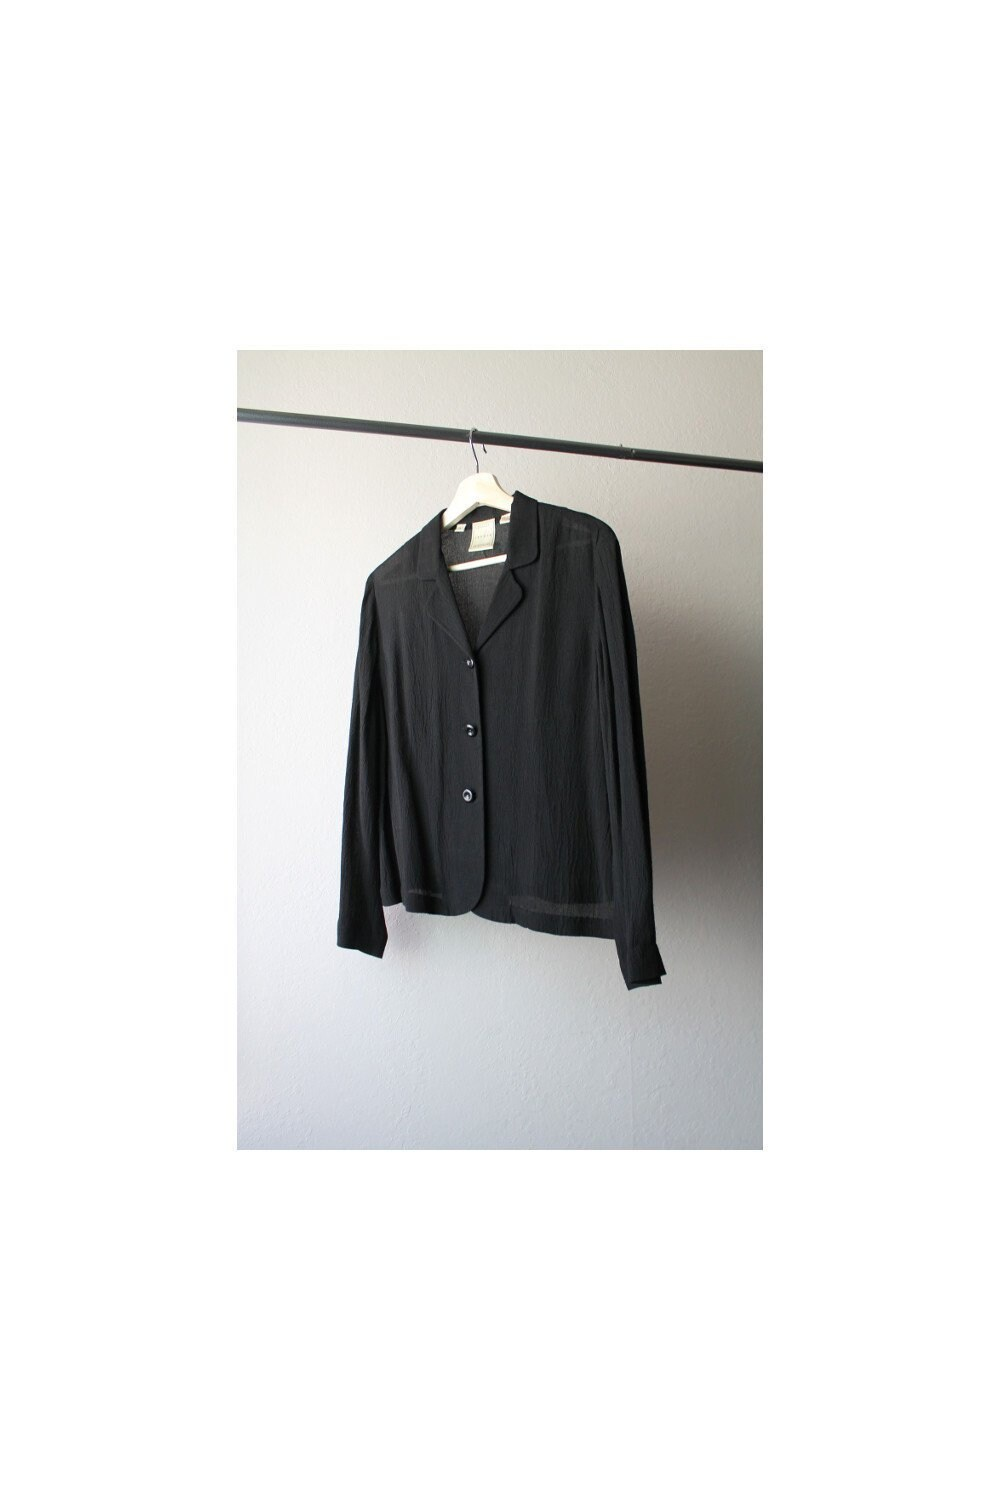 32151c1f 1990s Minimalist Sheer Black Button Down Blouse Size Small   Etsy